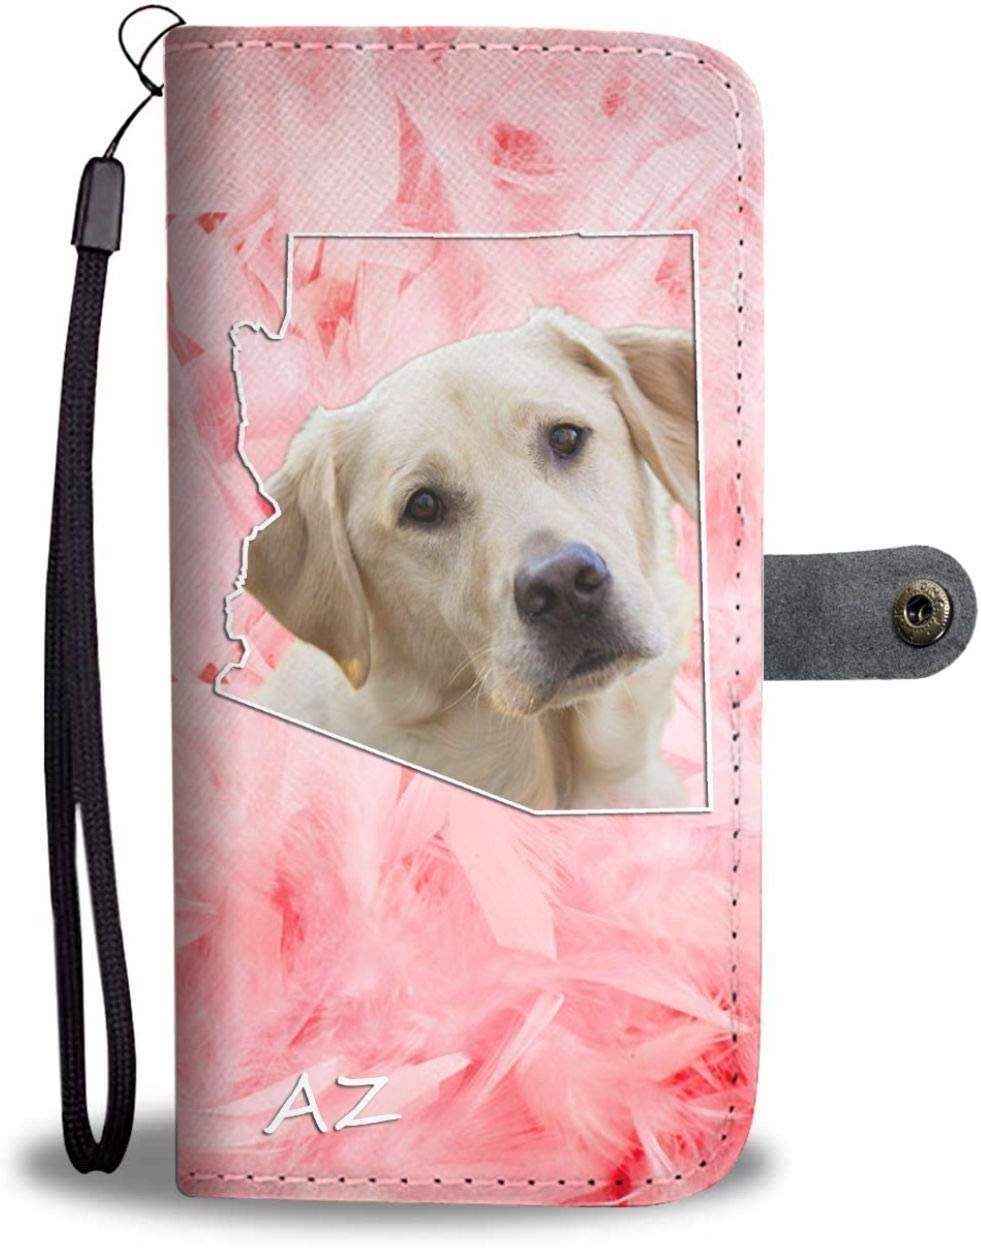 Labrador Retriever Printed Leather Wallet Case for Samsung, iPhone, LG, Goole Pixel, Huawei, HTC, Motorola, Xiaomi- Dog Printed Magnetic flip Cover with Card Slots Wrist Strap - Arizona State